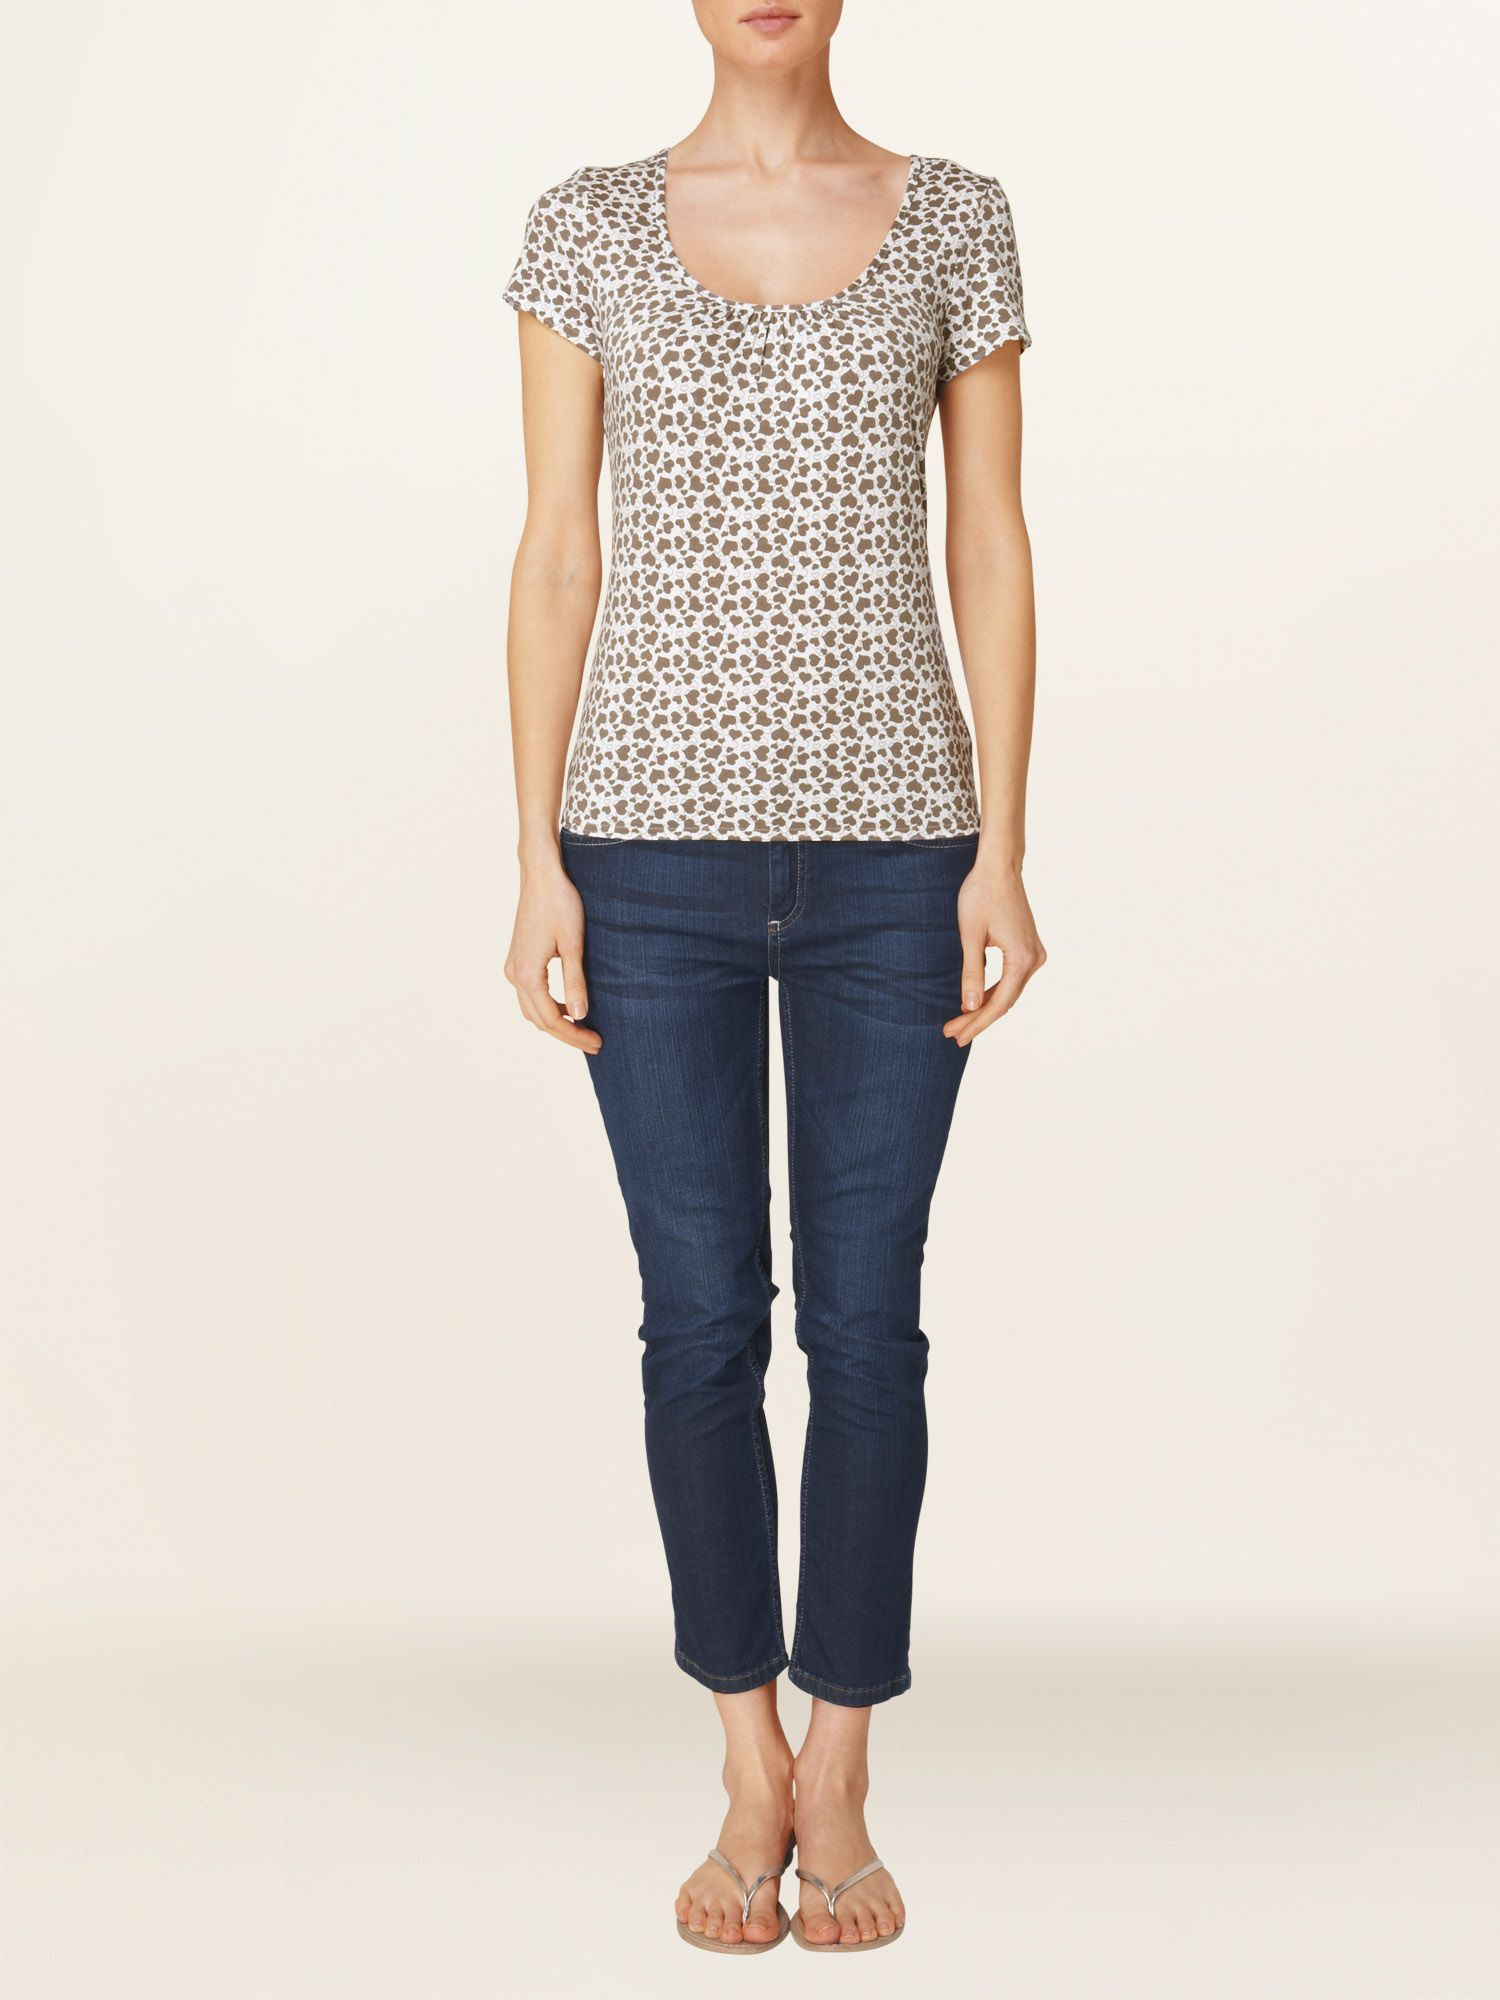 Tiny hearts print scoop neck top